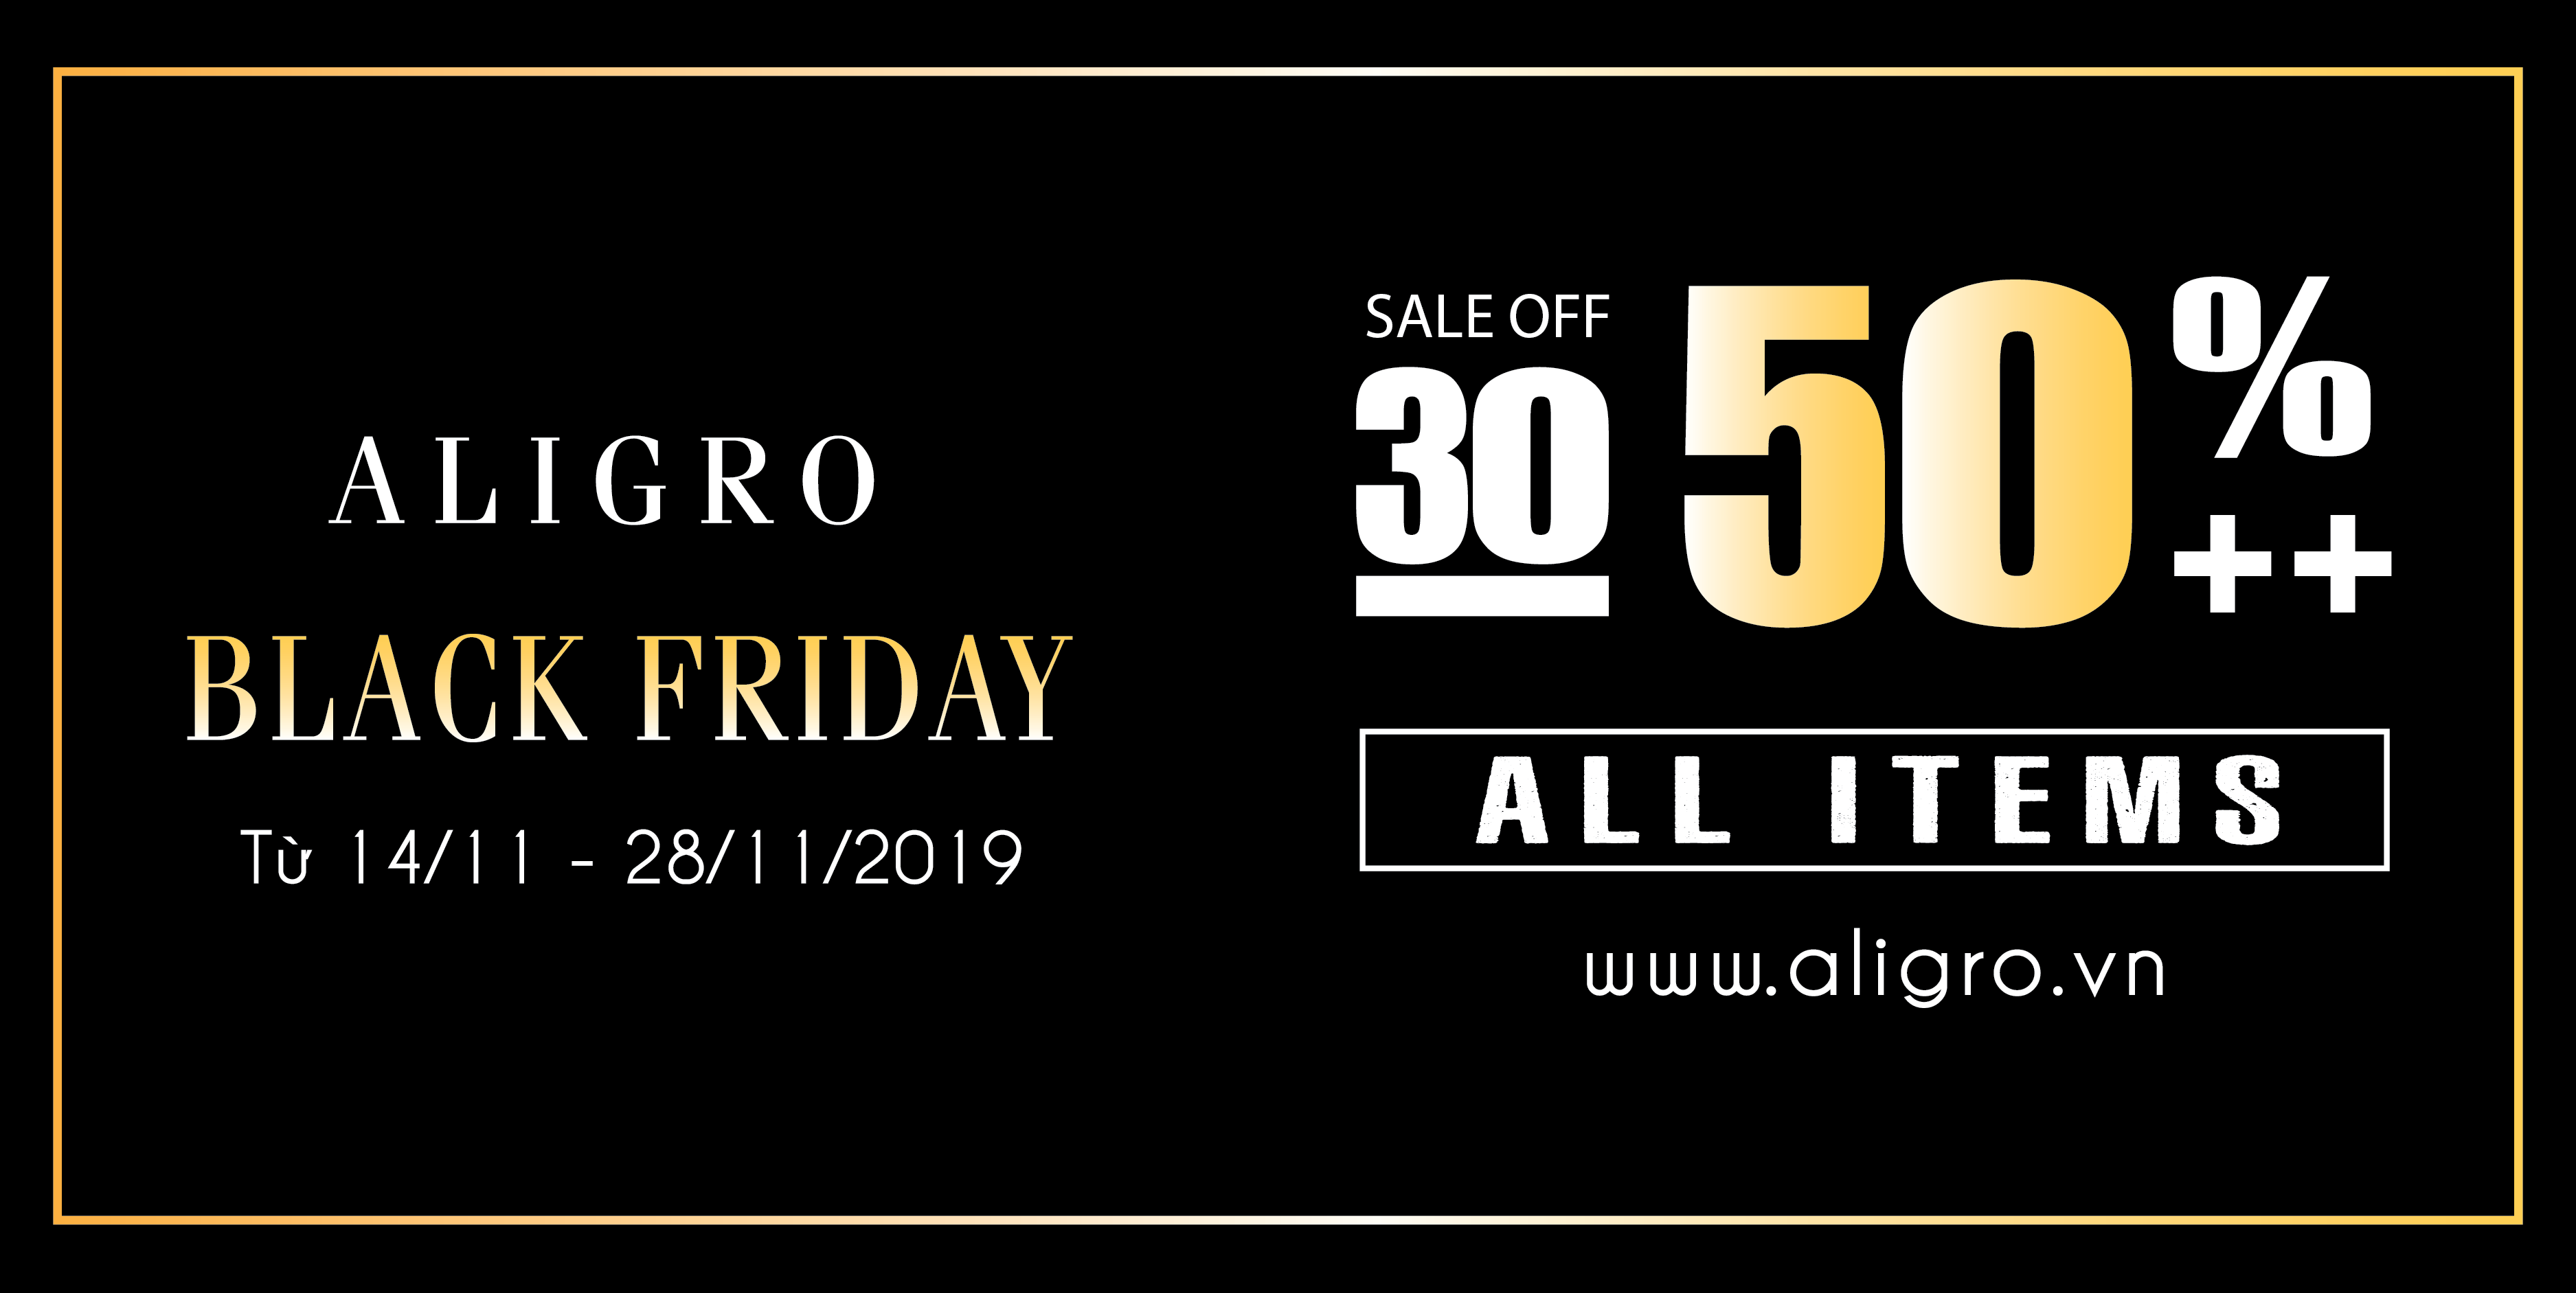 BLACK FRIDAY SALE CỰC SỐC